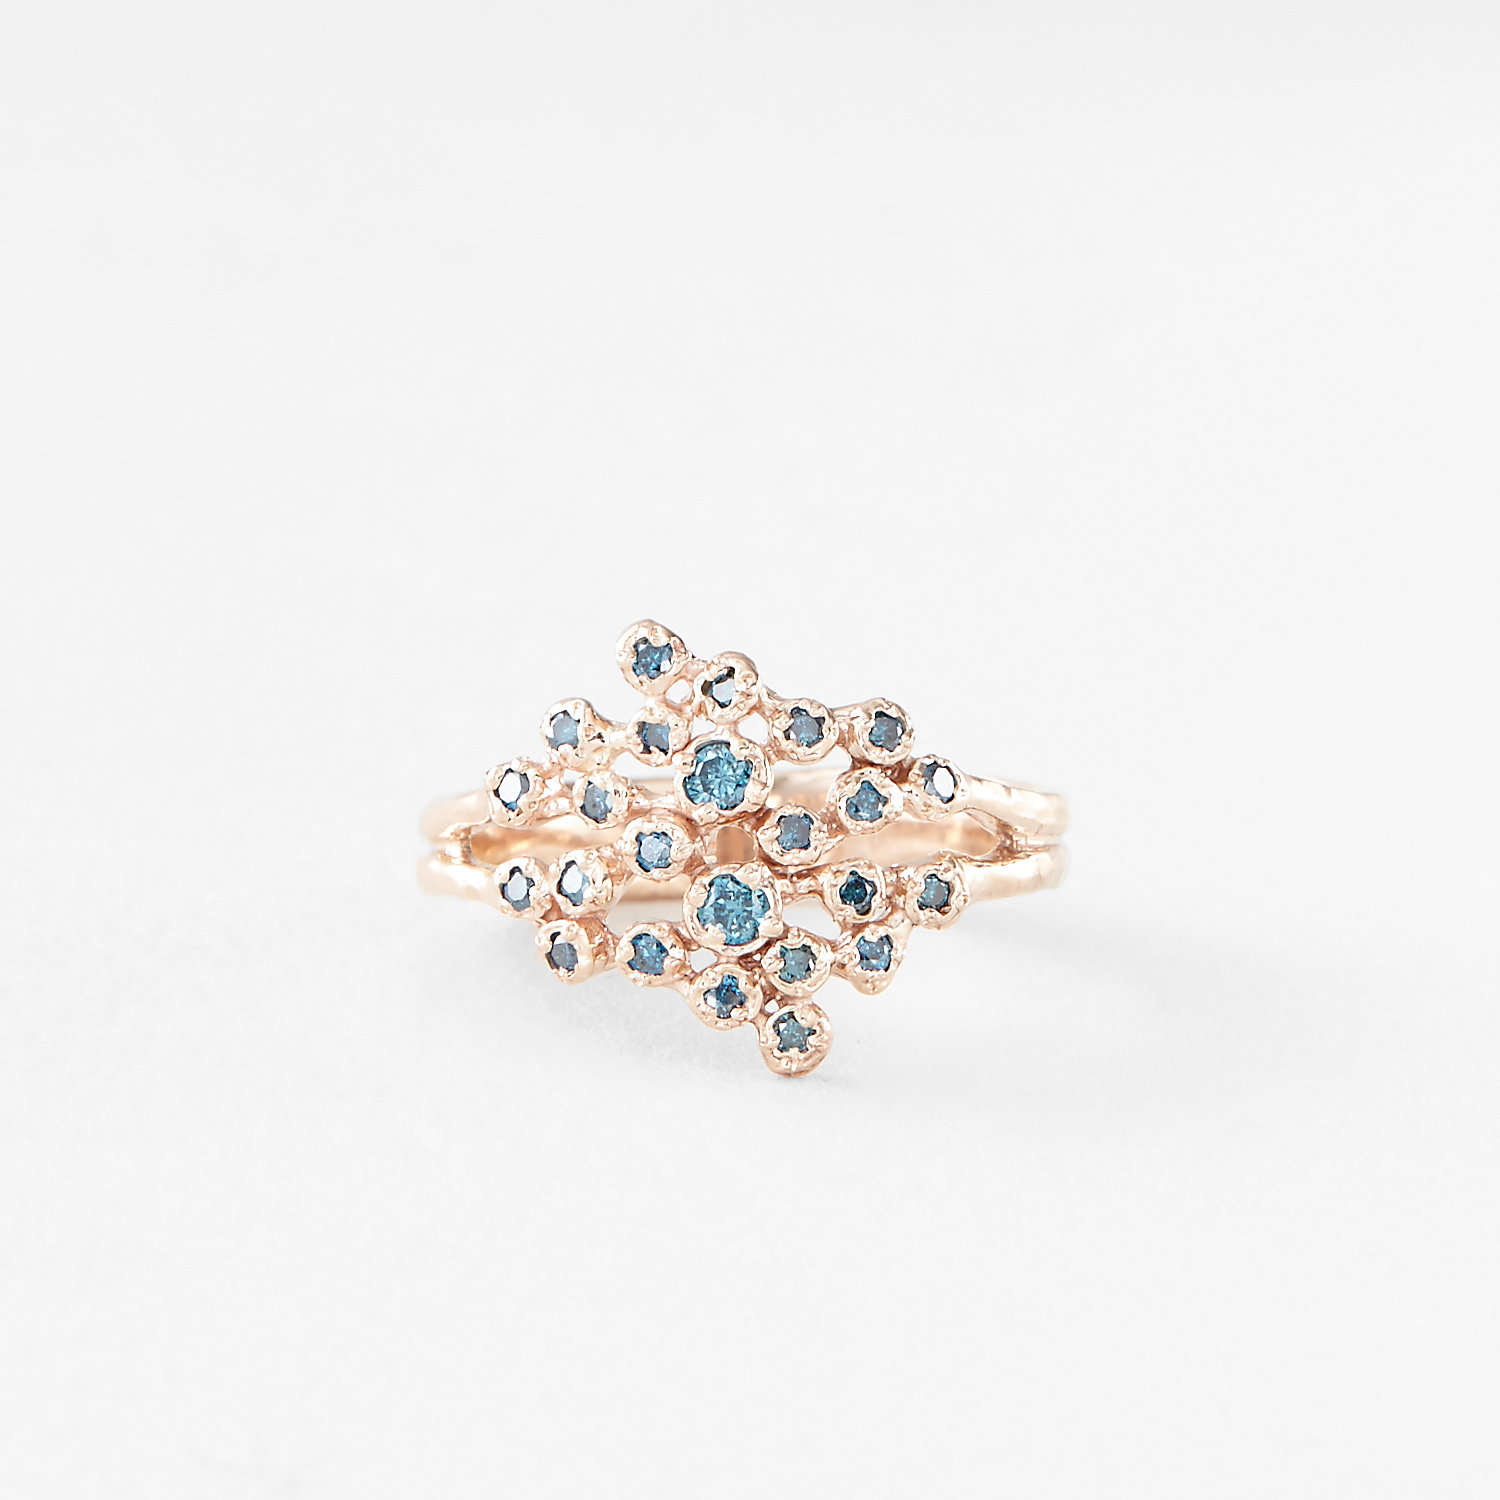 24 BLUE DIAMOND CLUSTER RING